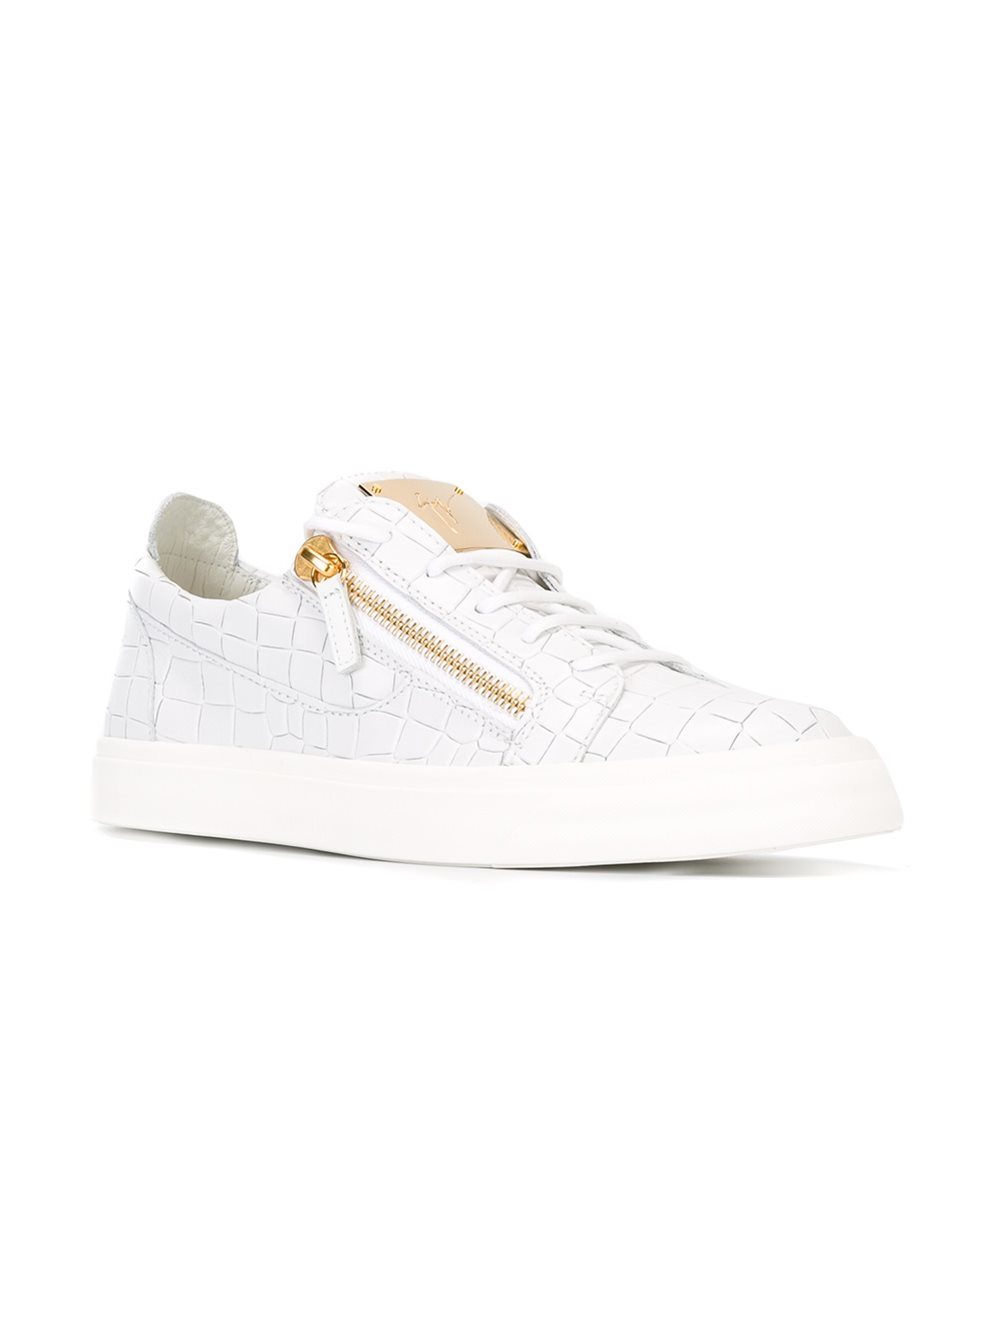 Giuseppe Zanotti Leather 'frankie' Low Top Sneakers in White